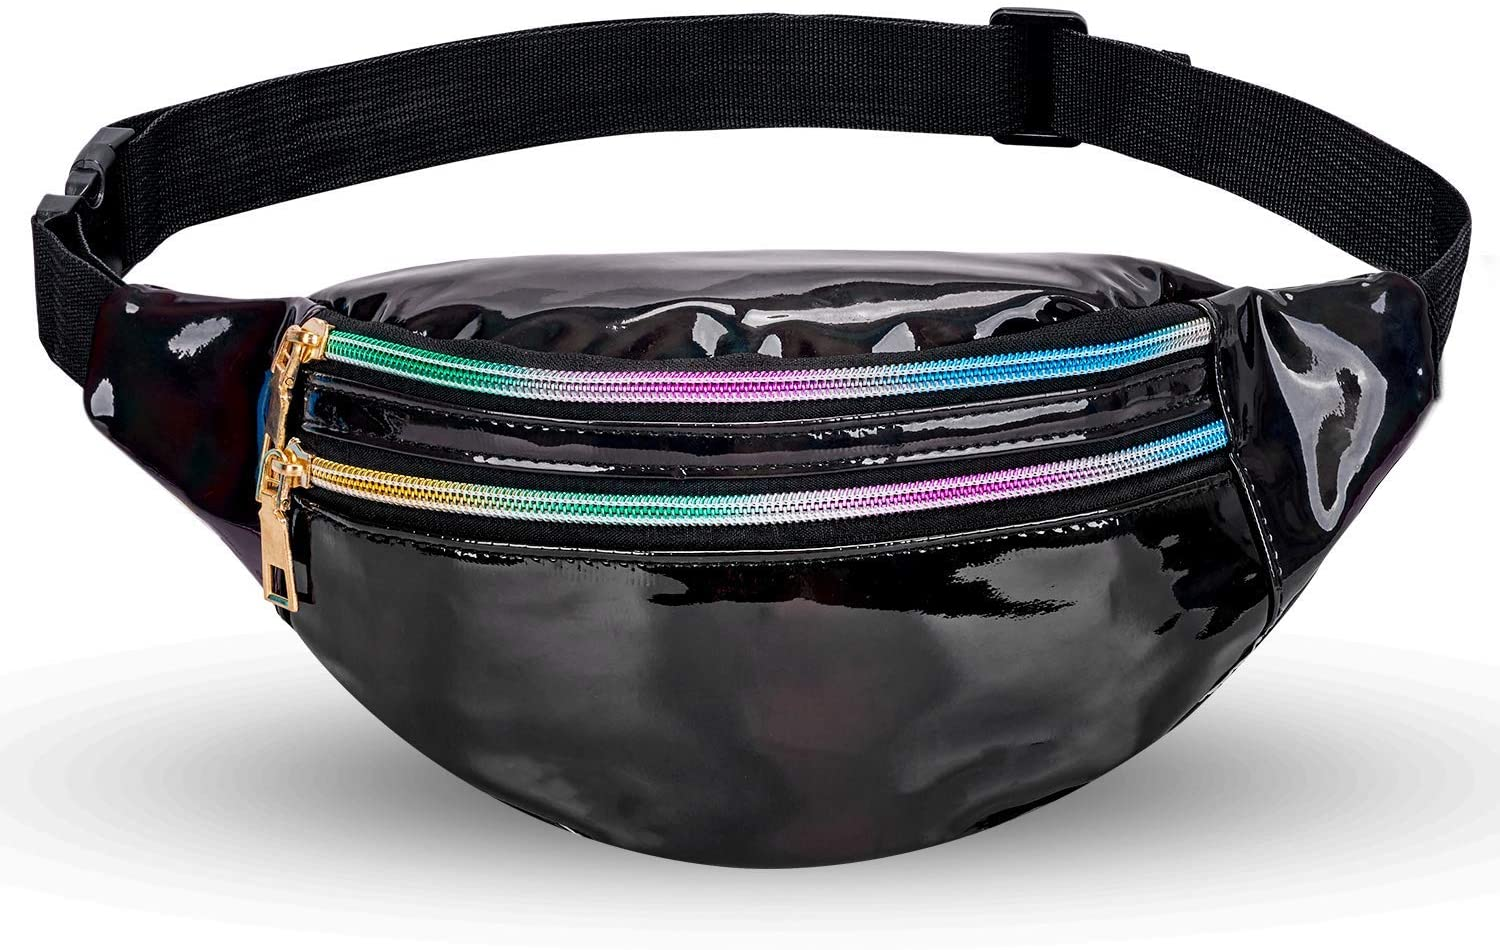 LIVACASA Holographic Fanny Packs for Women Cute Black Waist Packs Shiny Waist Bum Bag Waterproof for Travel Party Festival Running Hiking